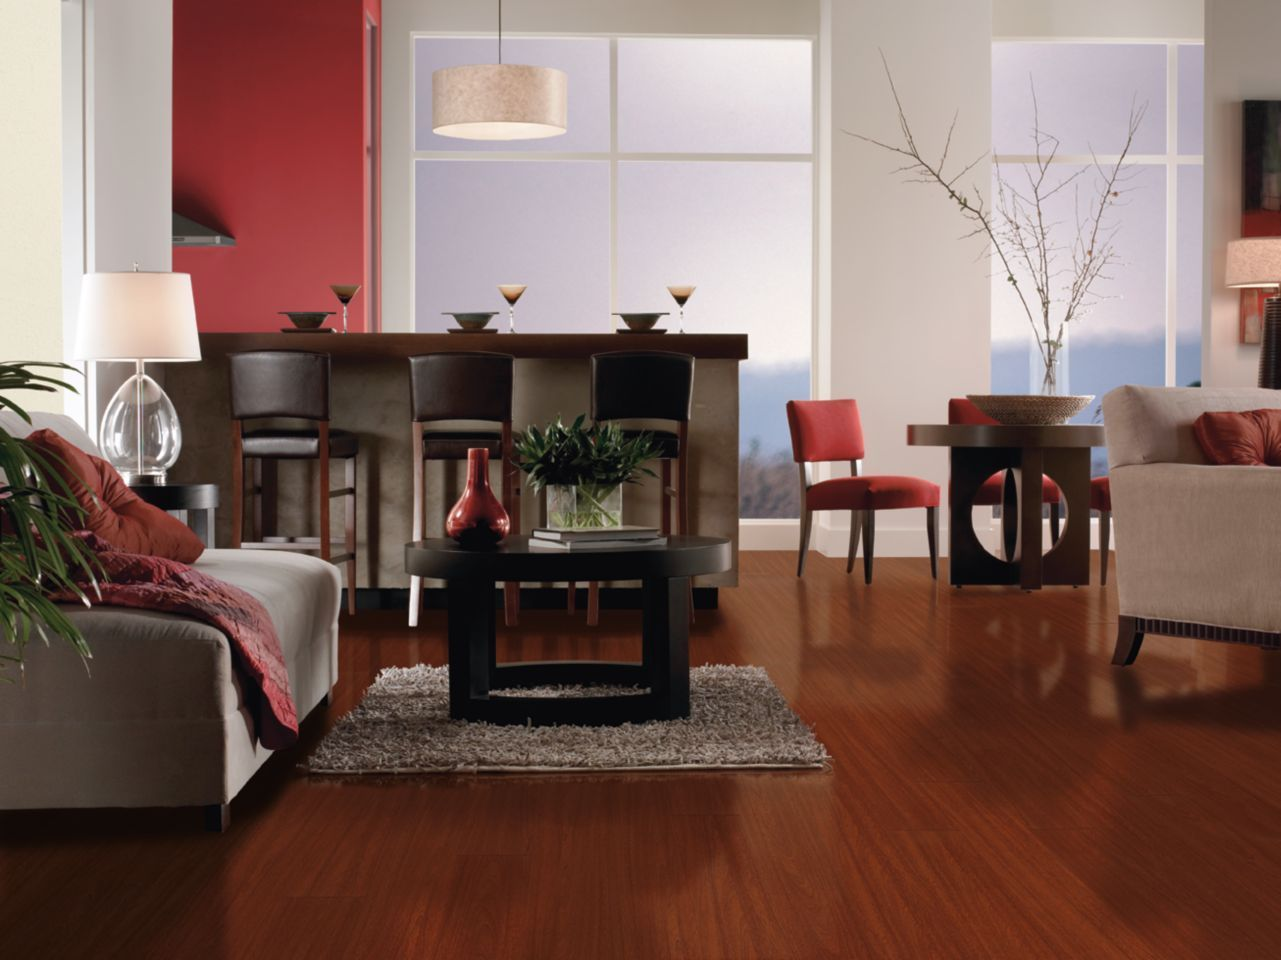 Achieve The Ultimate In Luxury Laminate Flooring With Armstrong Flooring Armstrong S Premium Laminate Floors Offer Stunning Tropical F Armstrong Hardwood Floors